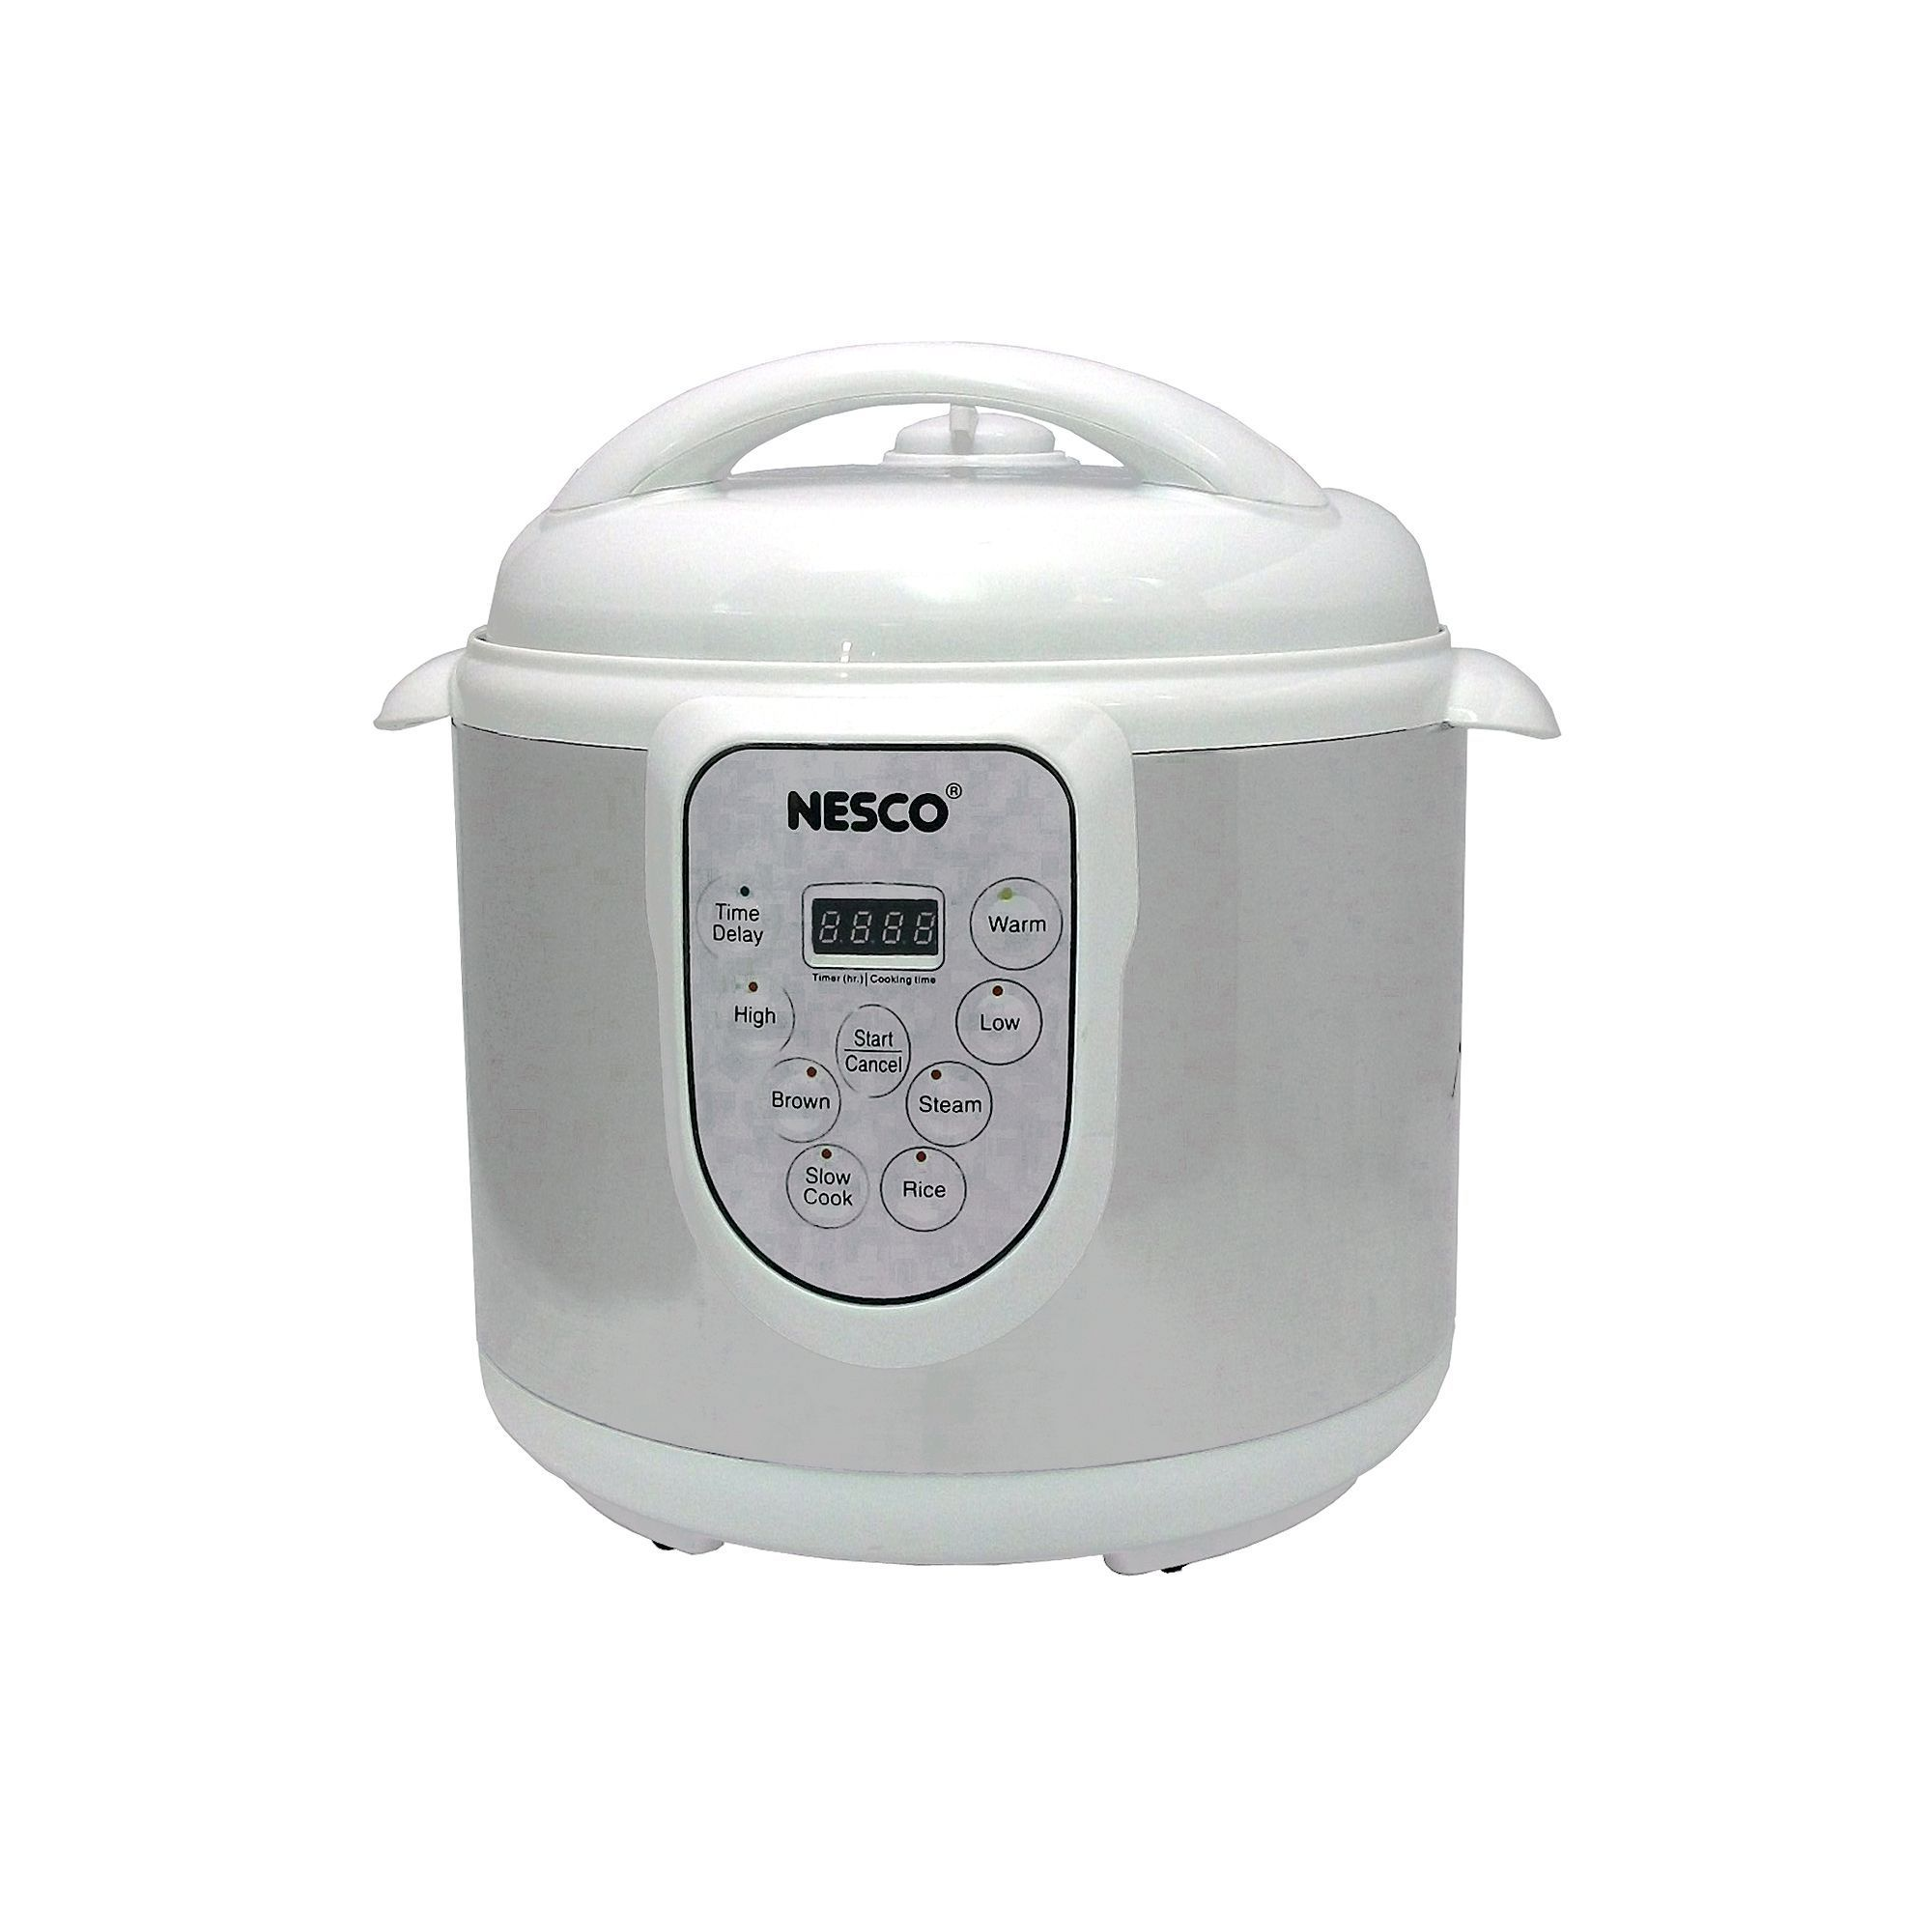 Nesco stainless steel qt pressure cooker products pinterest